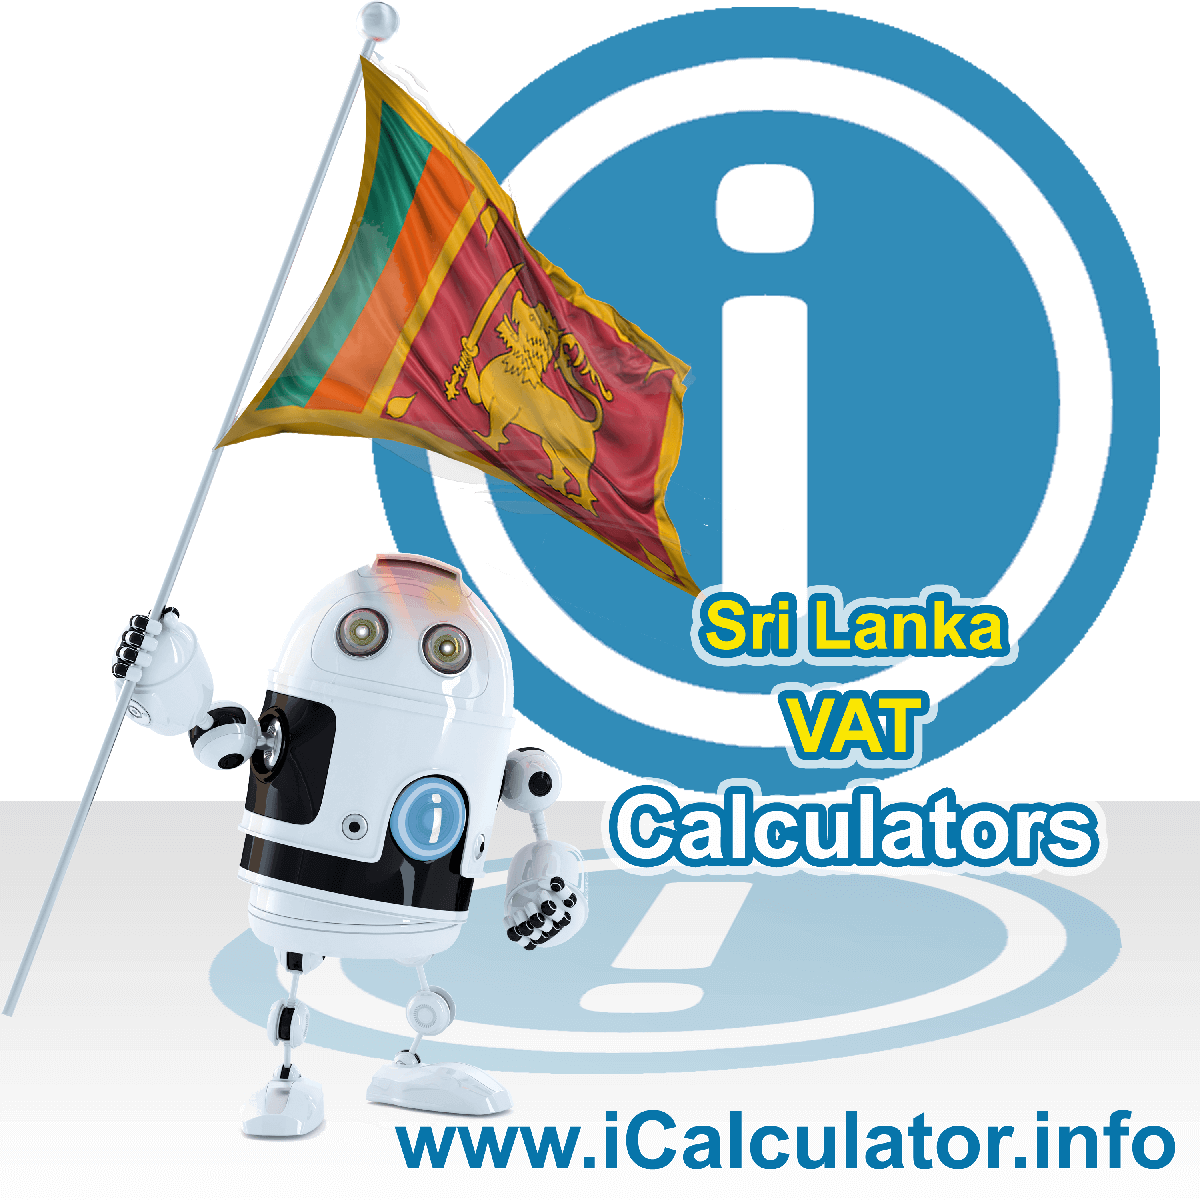 Sri Lanka VAT Calculator. This image shows the Sri Lanka flag and information relating to the VAT formula used for calculating Value Added Tax in Sri Lanka using the Sri Lanka VAT Calculator in 2020